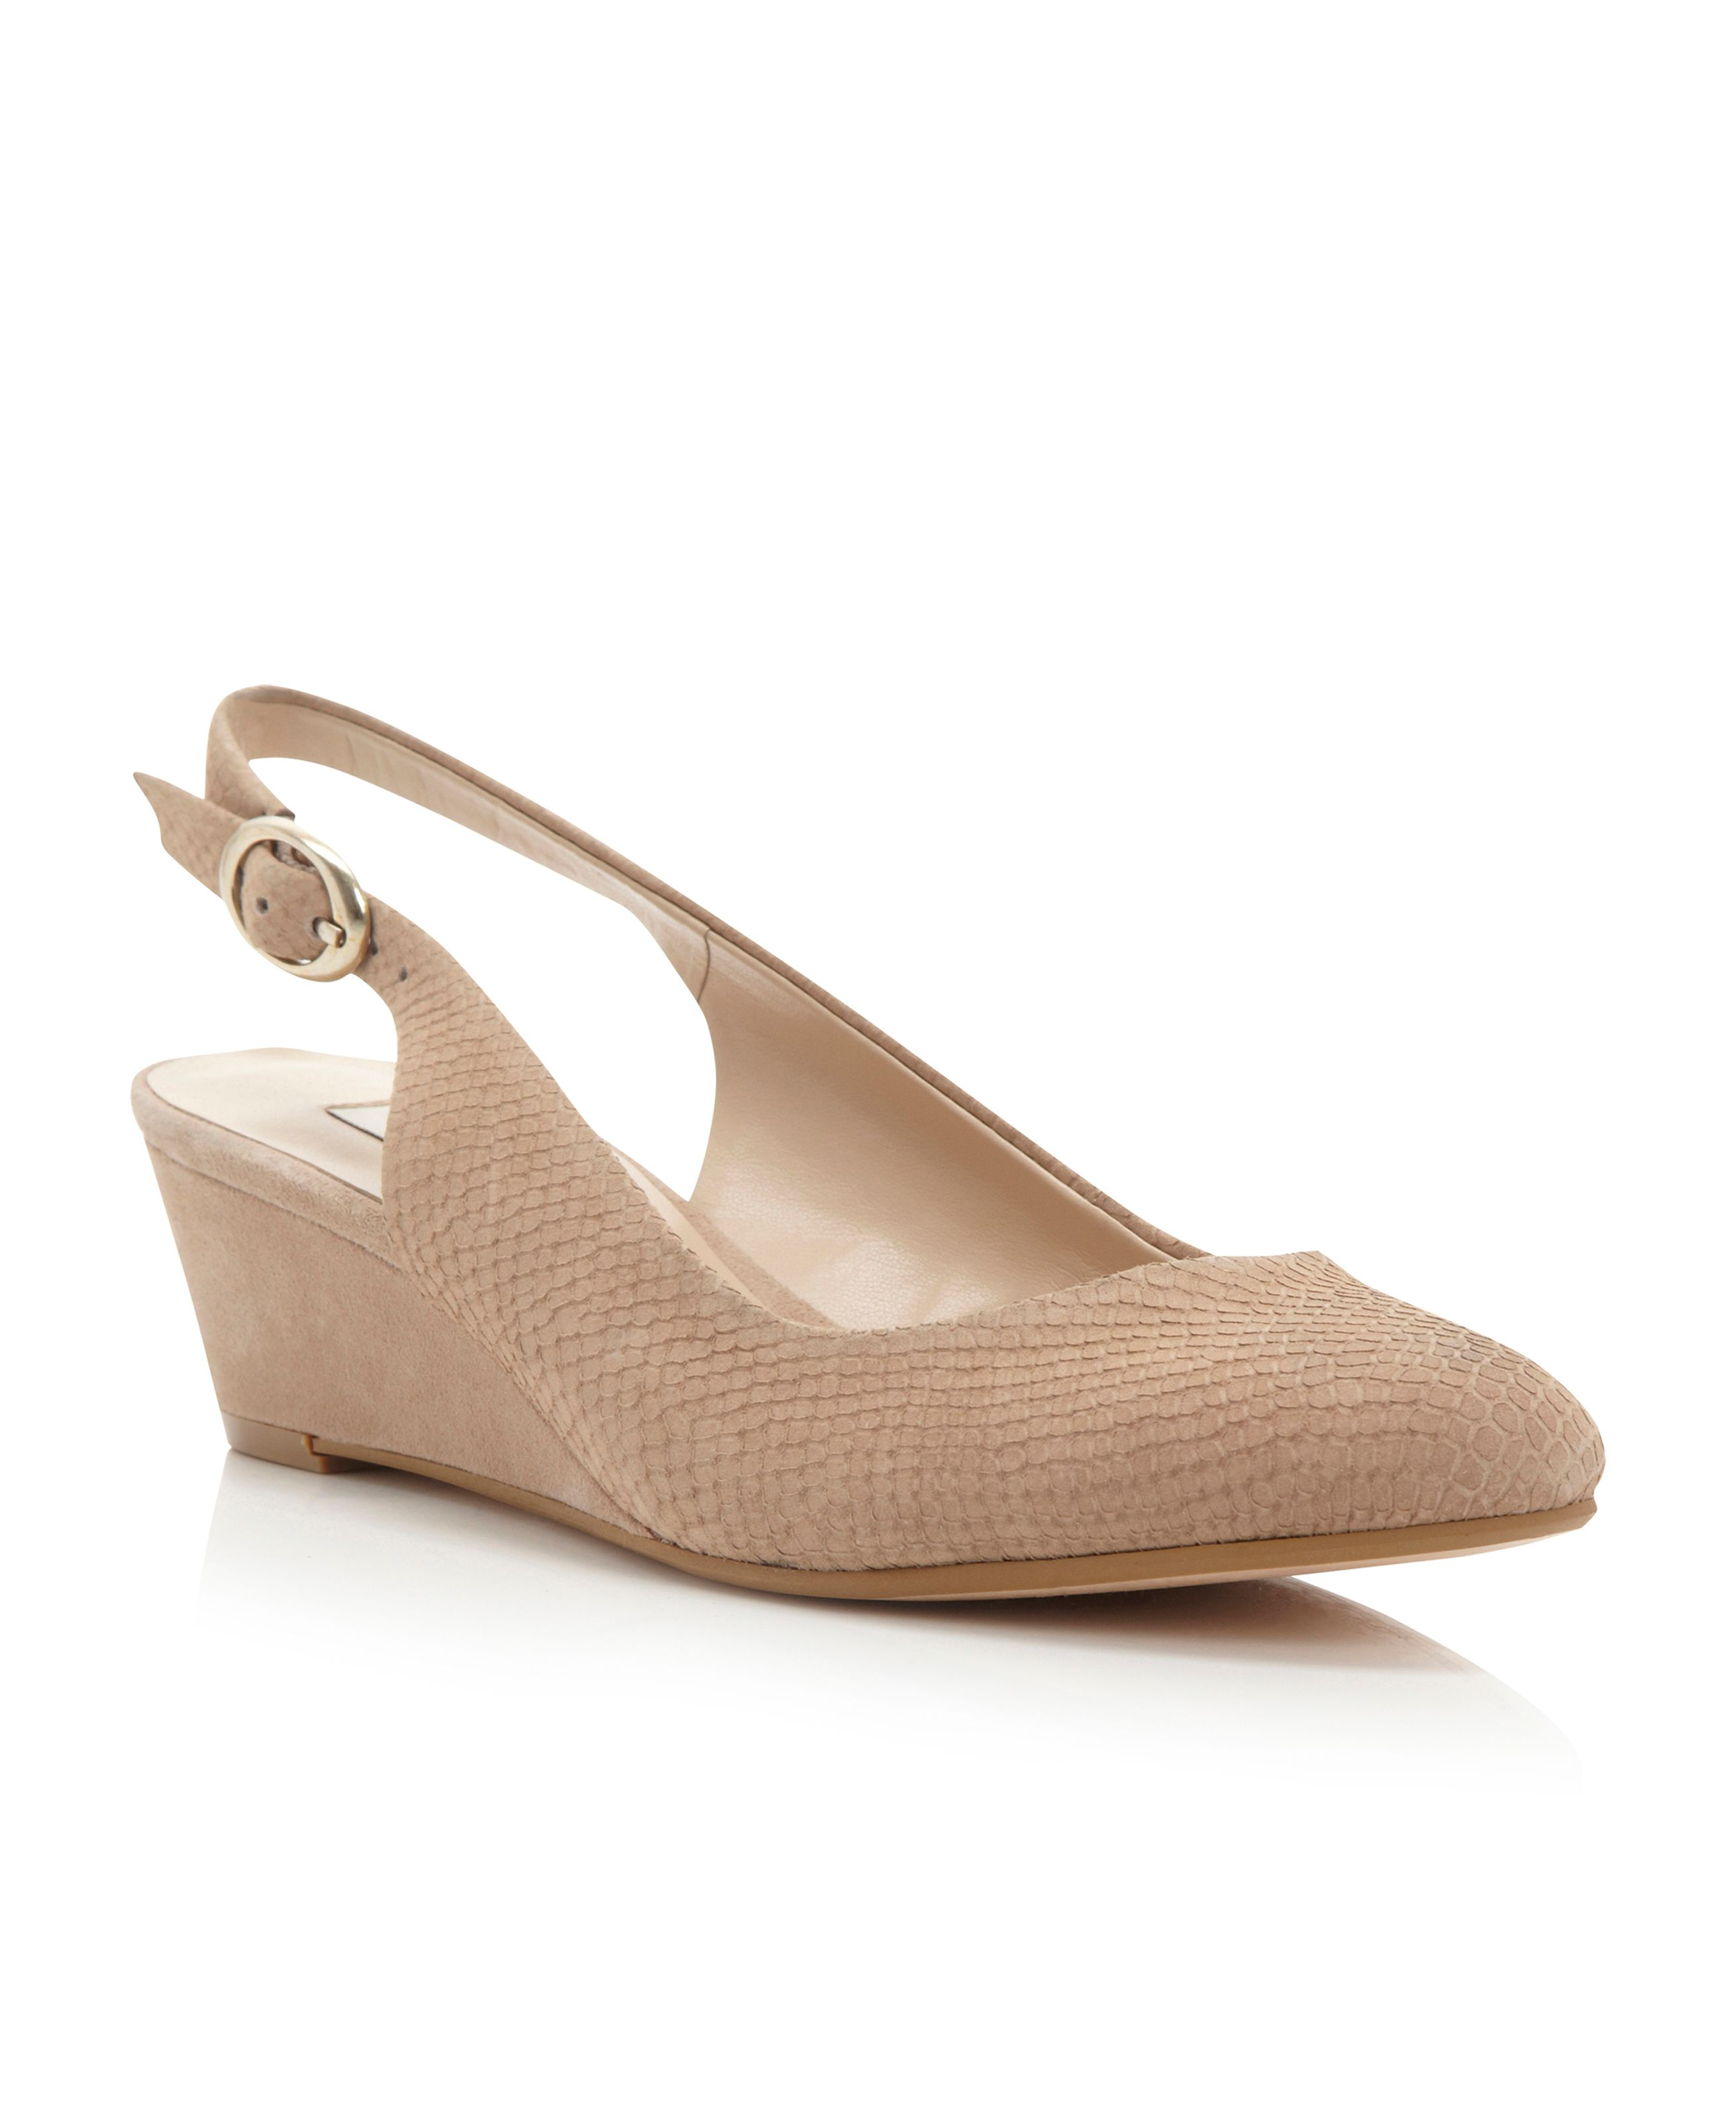 Consort sling back wedge court shoes